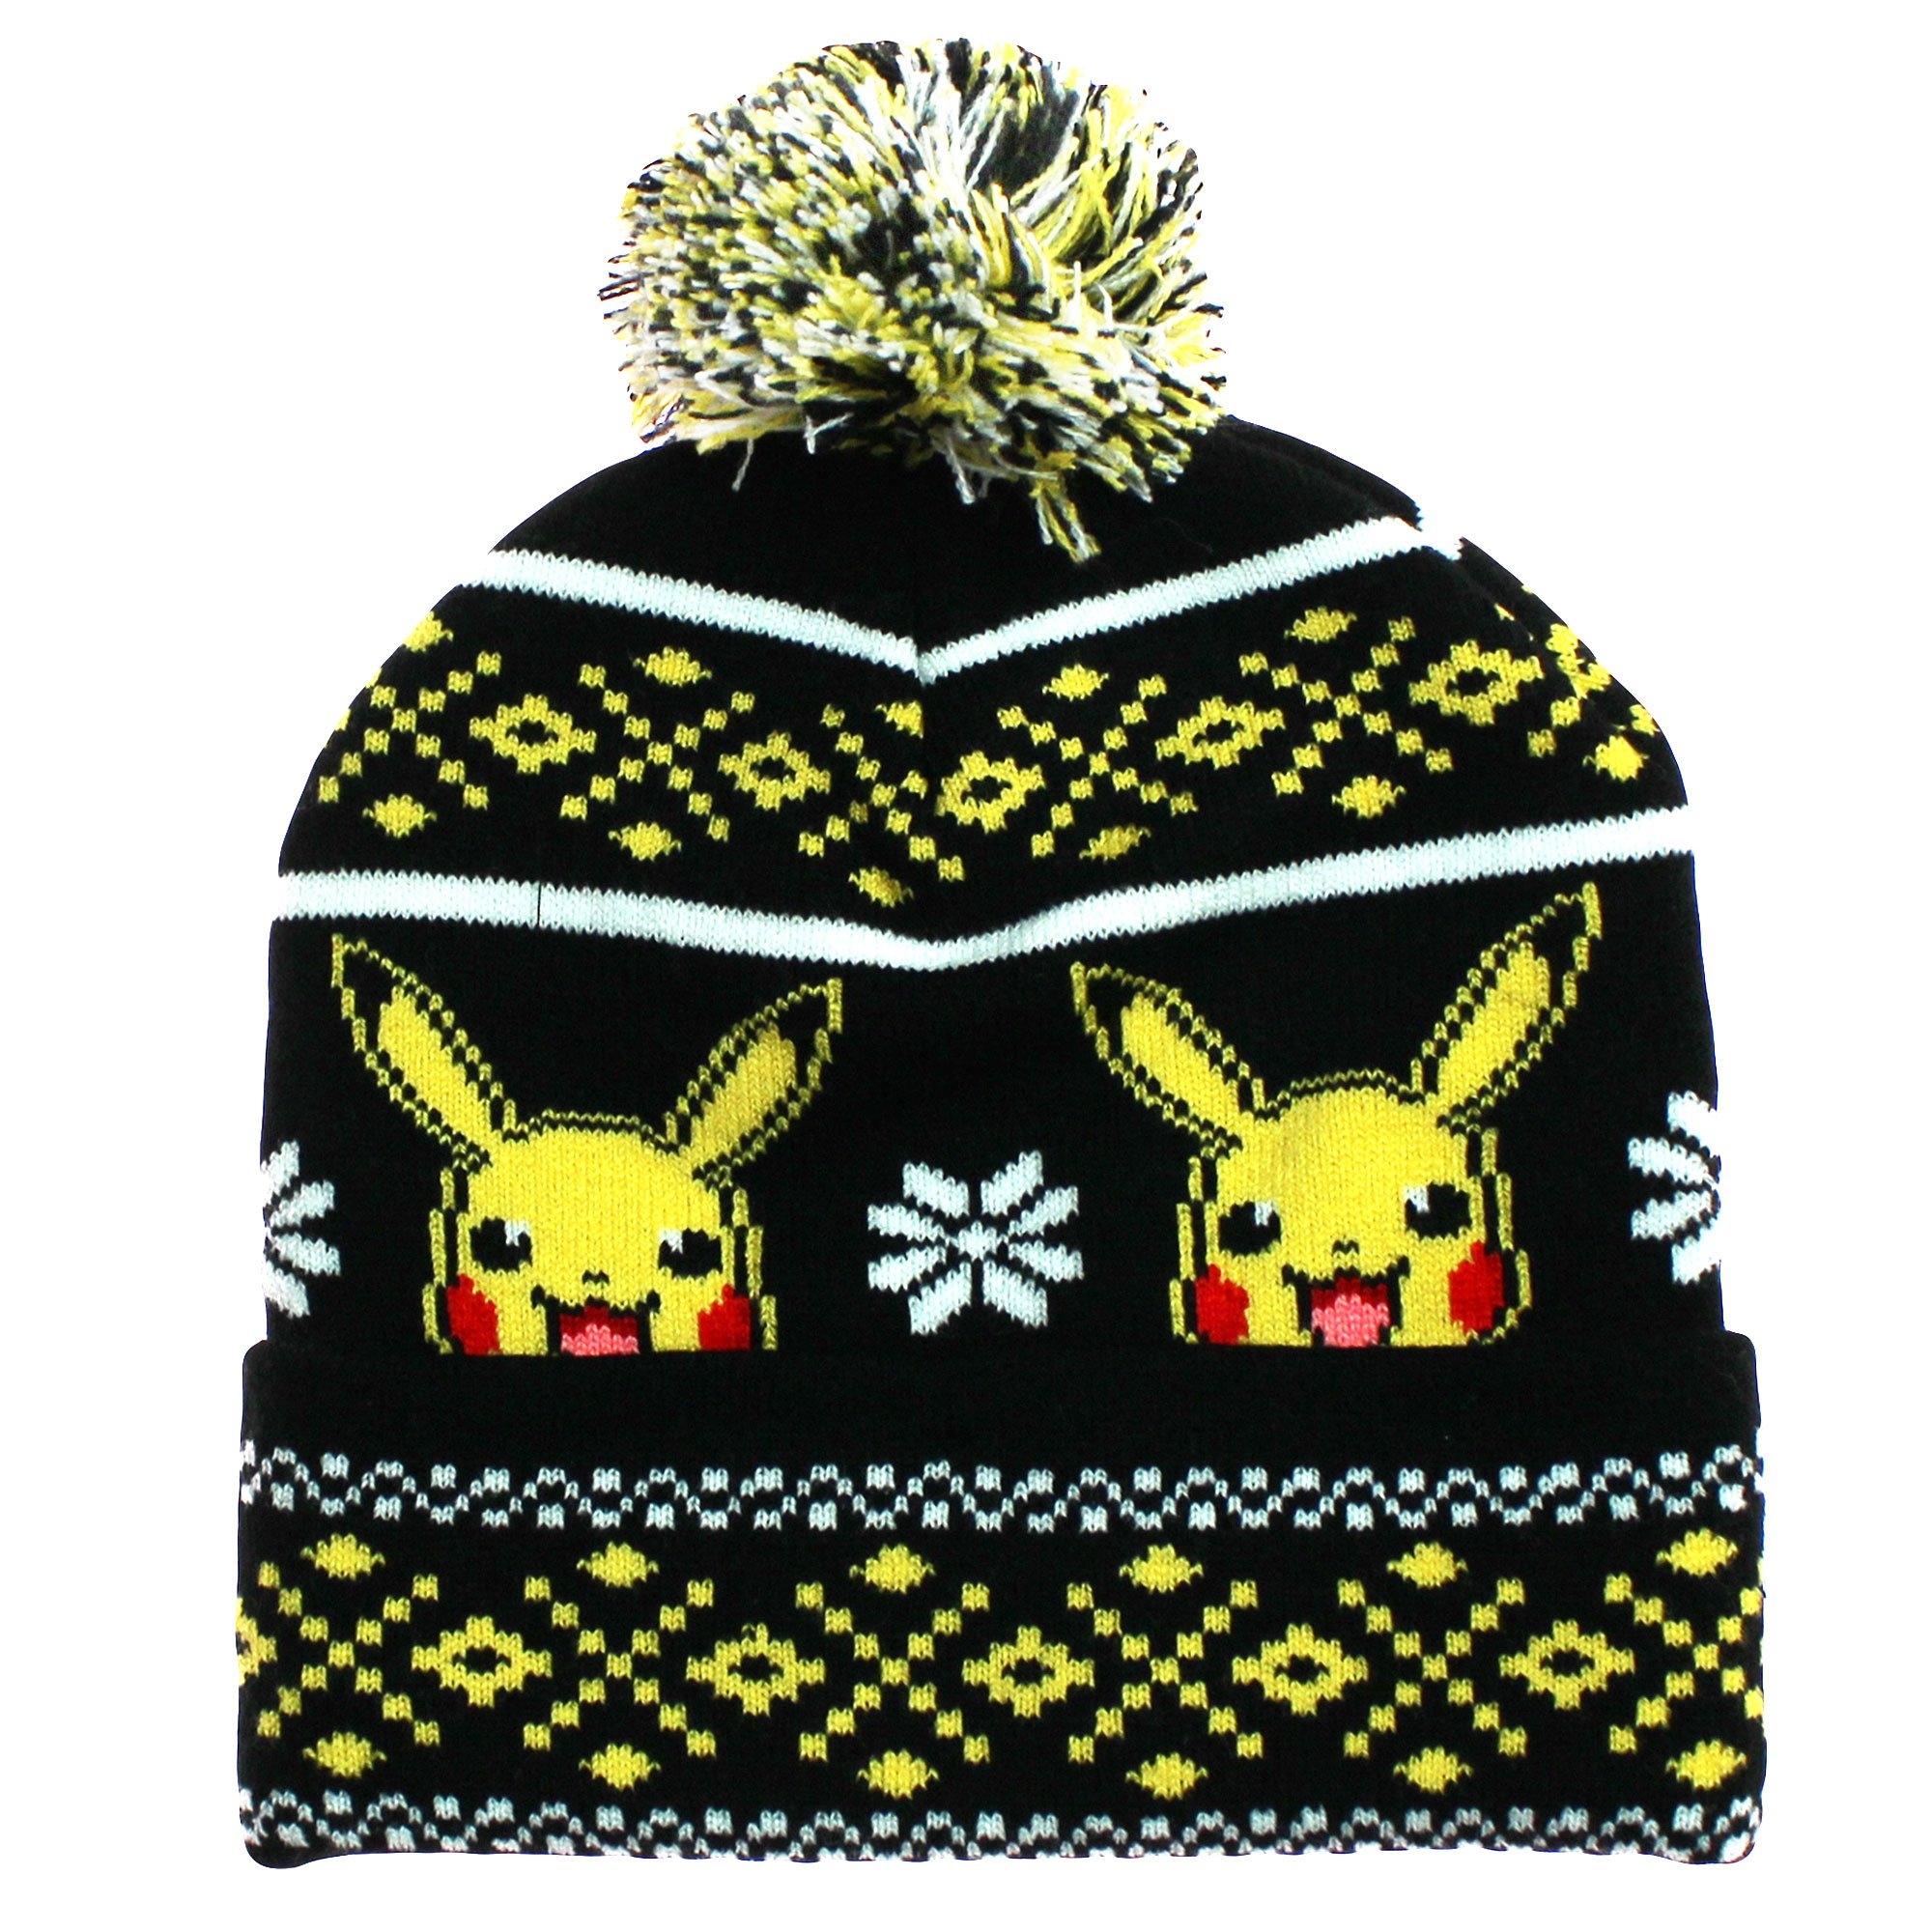 e7604a972f9 Get Quotations · bioWorld Pokemon Pikachu Winter Beanie Pom Pom Knit Hat  Black and Yellow Size 4-16